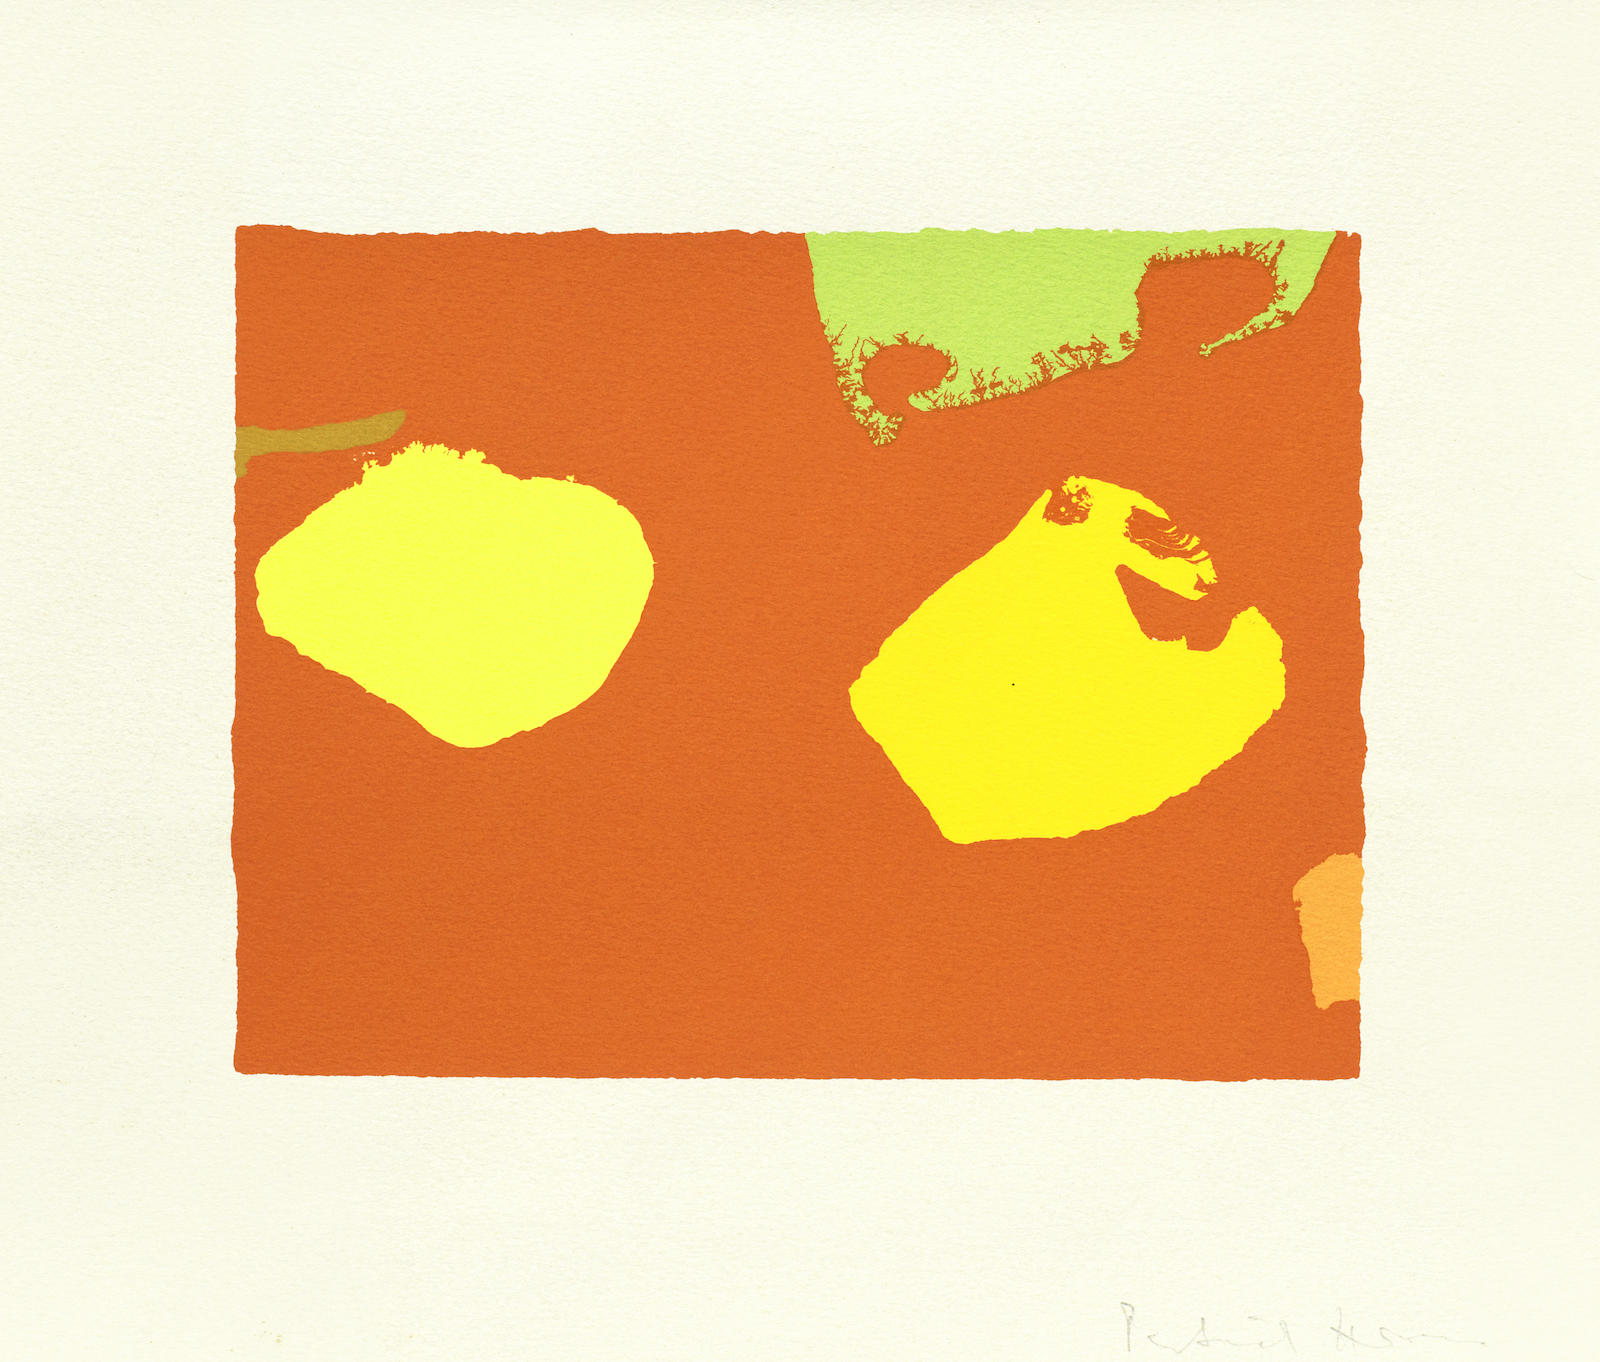 Patrick Heron-Limes and Yellows in Orange: June 1976, from The Shapes of Colour  unframed-1978